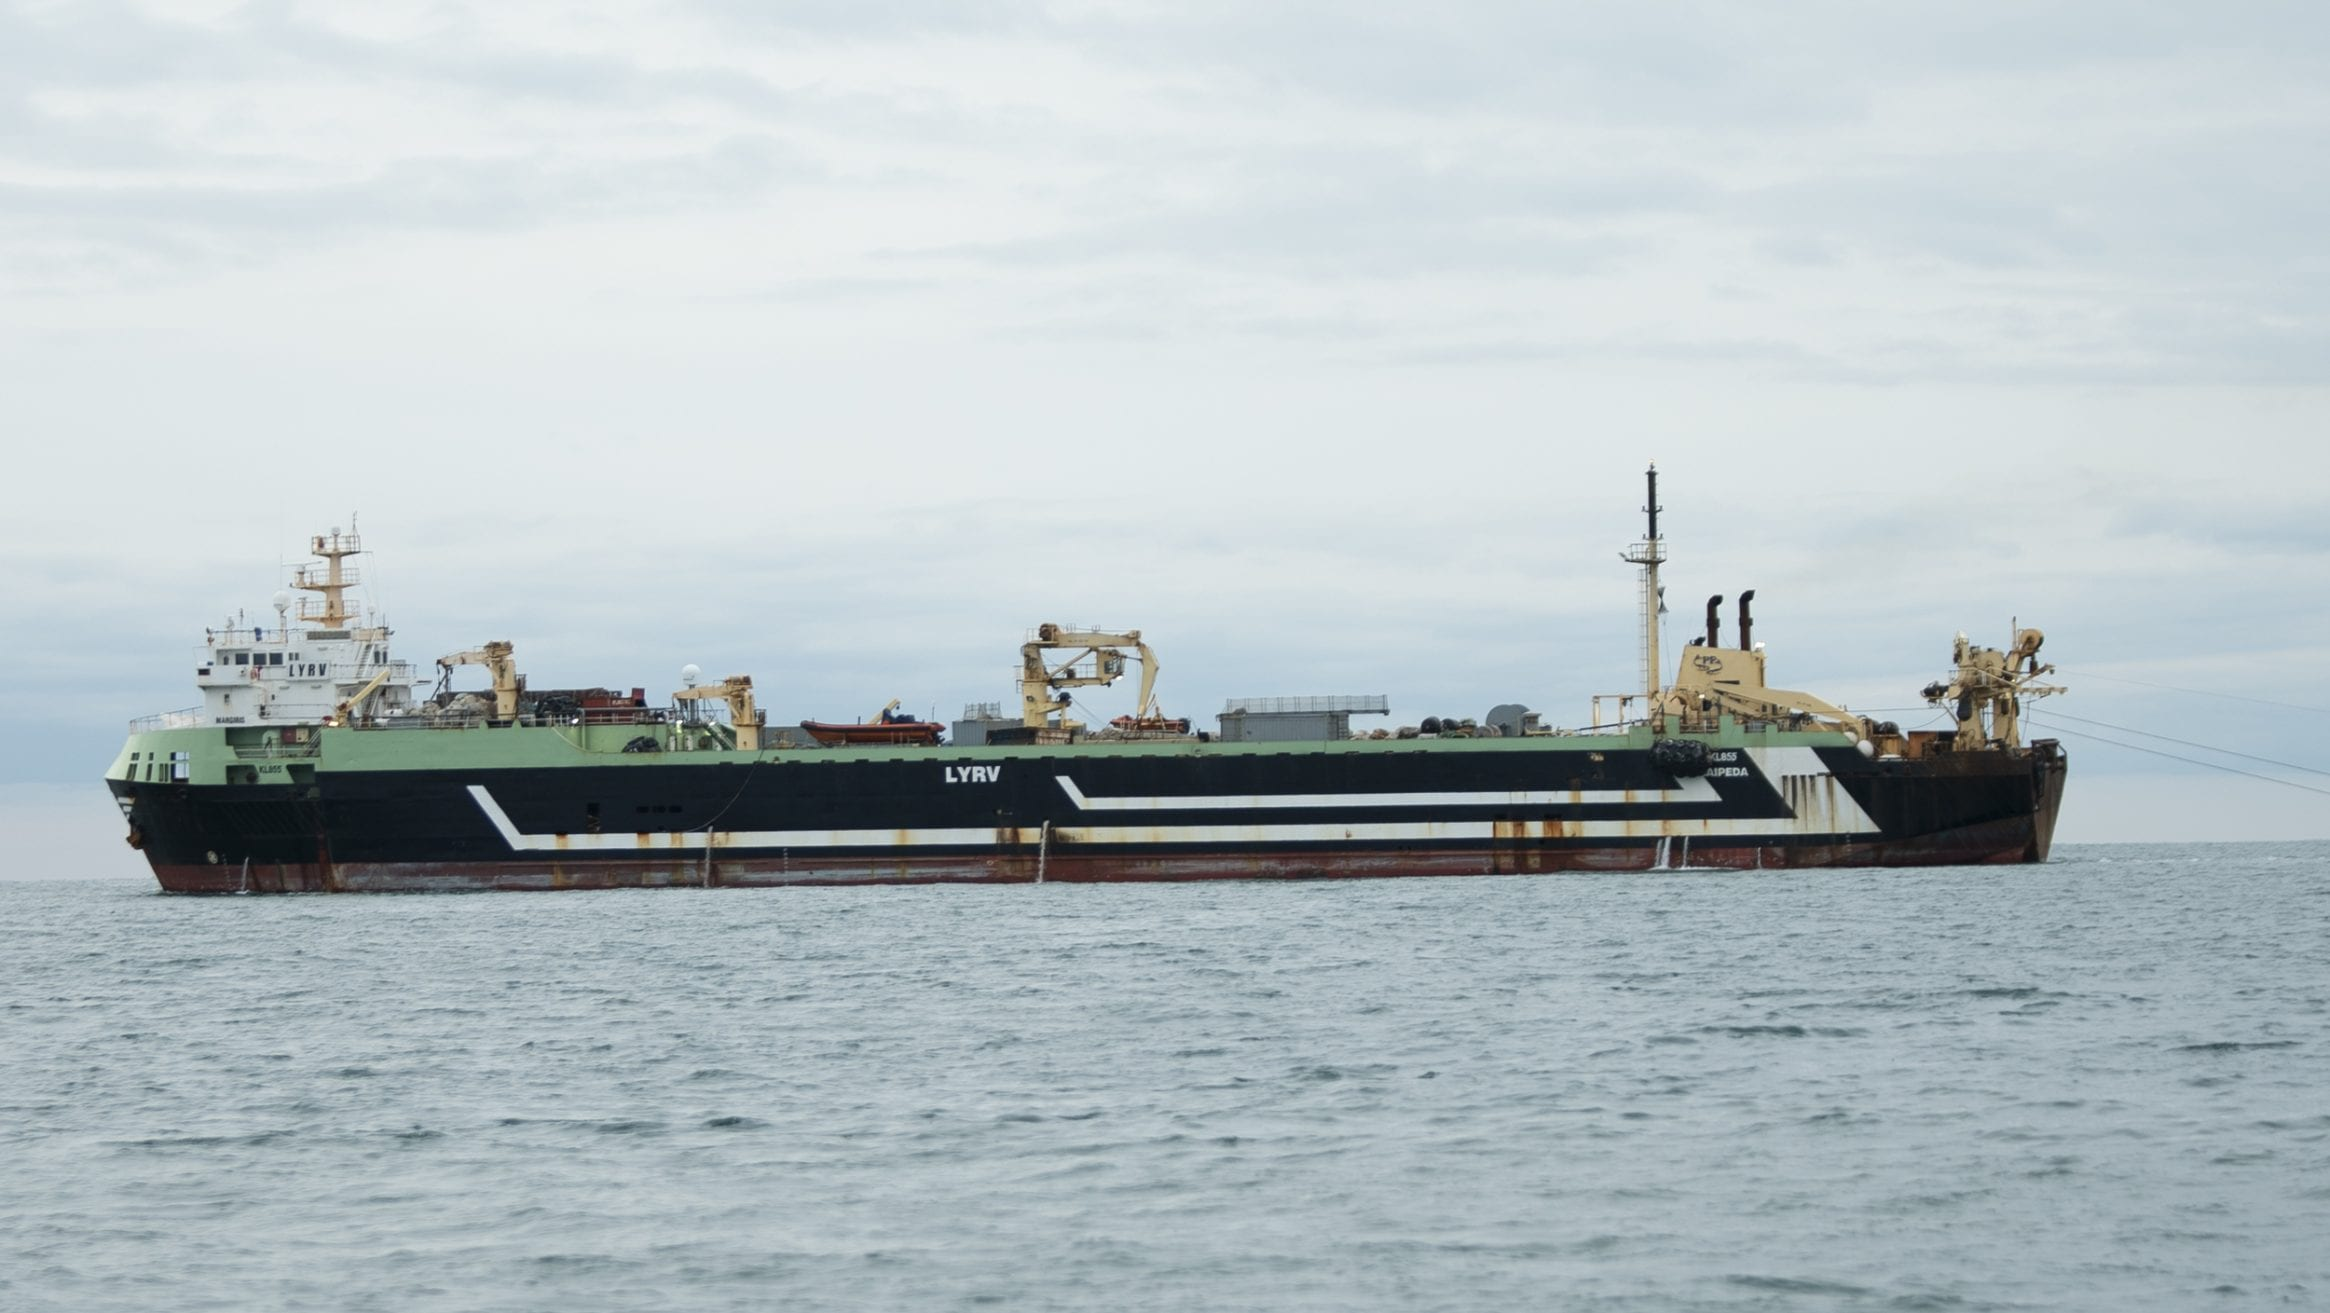 Margiris supertrawler fishing in the English Channel